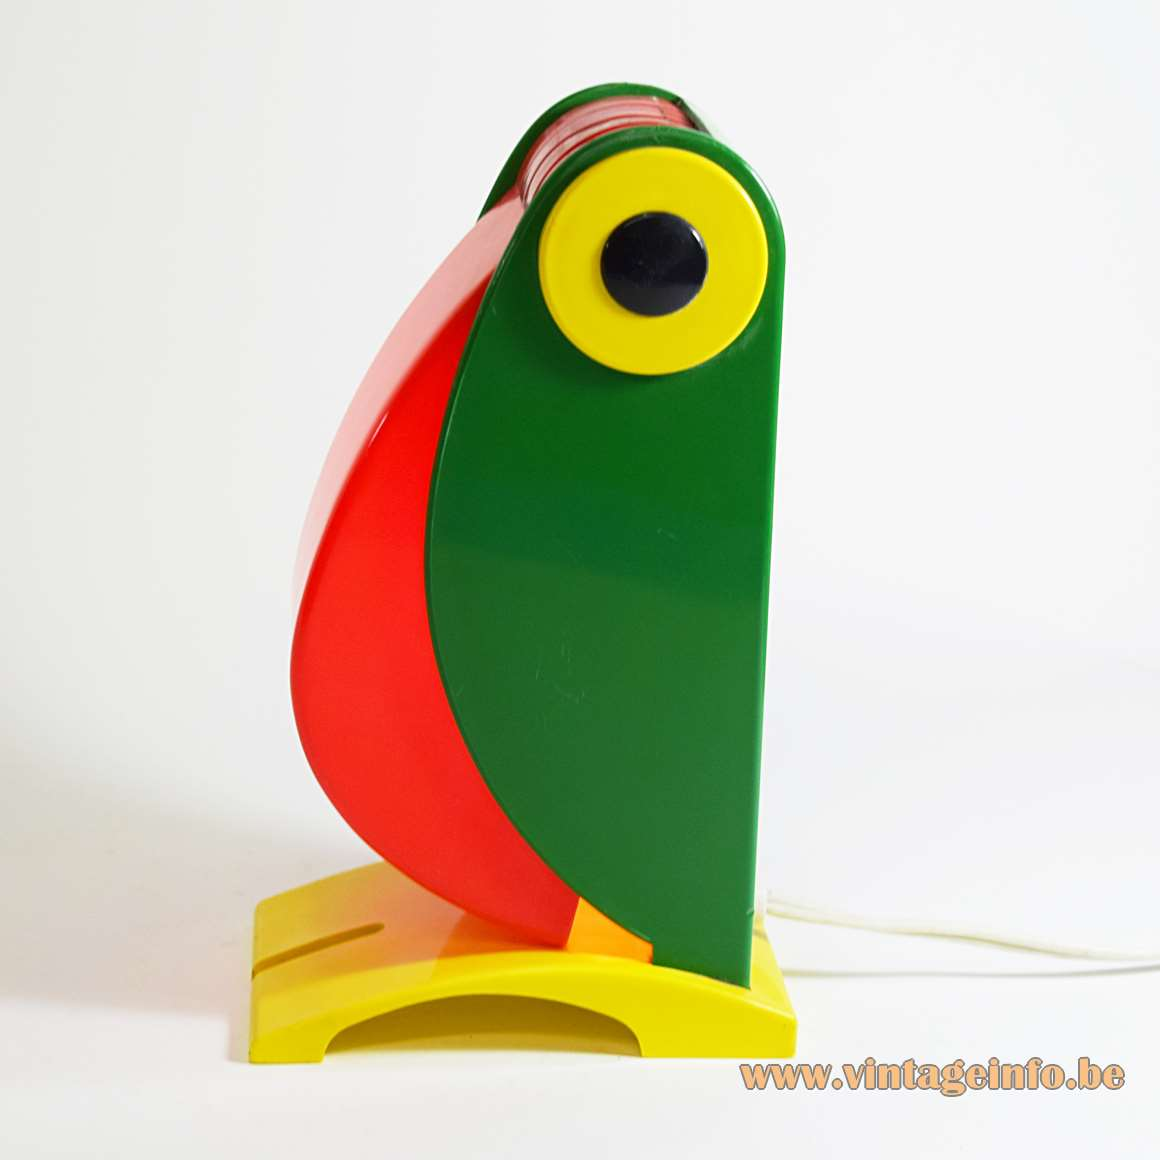 Toucan Table Lamp - Old Timer Ferrari